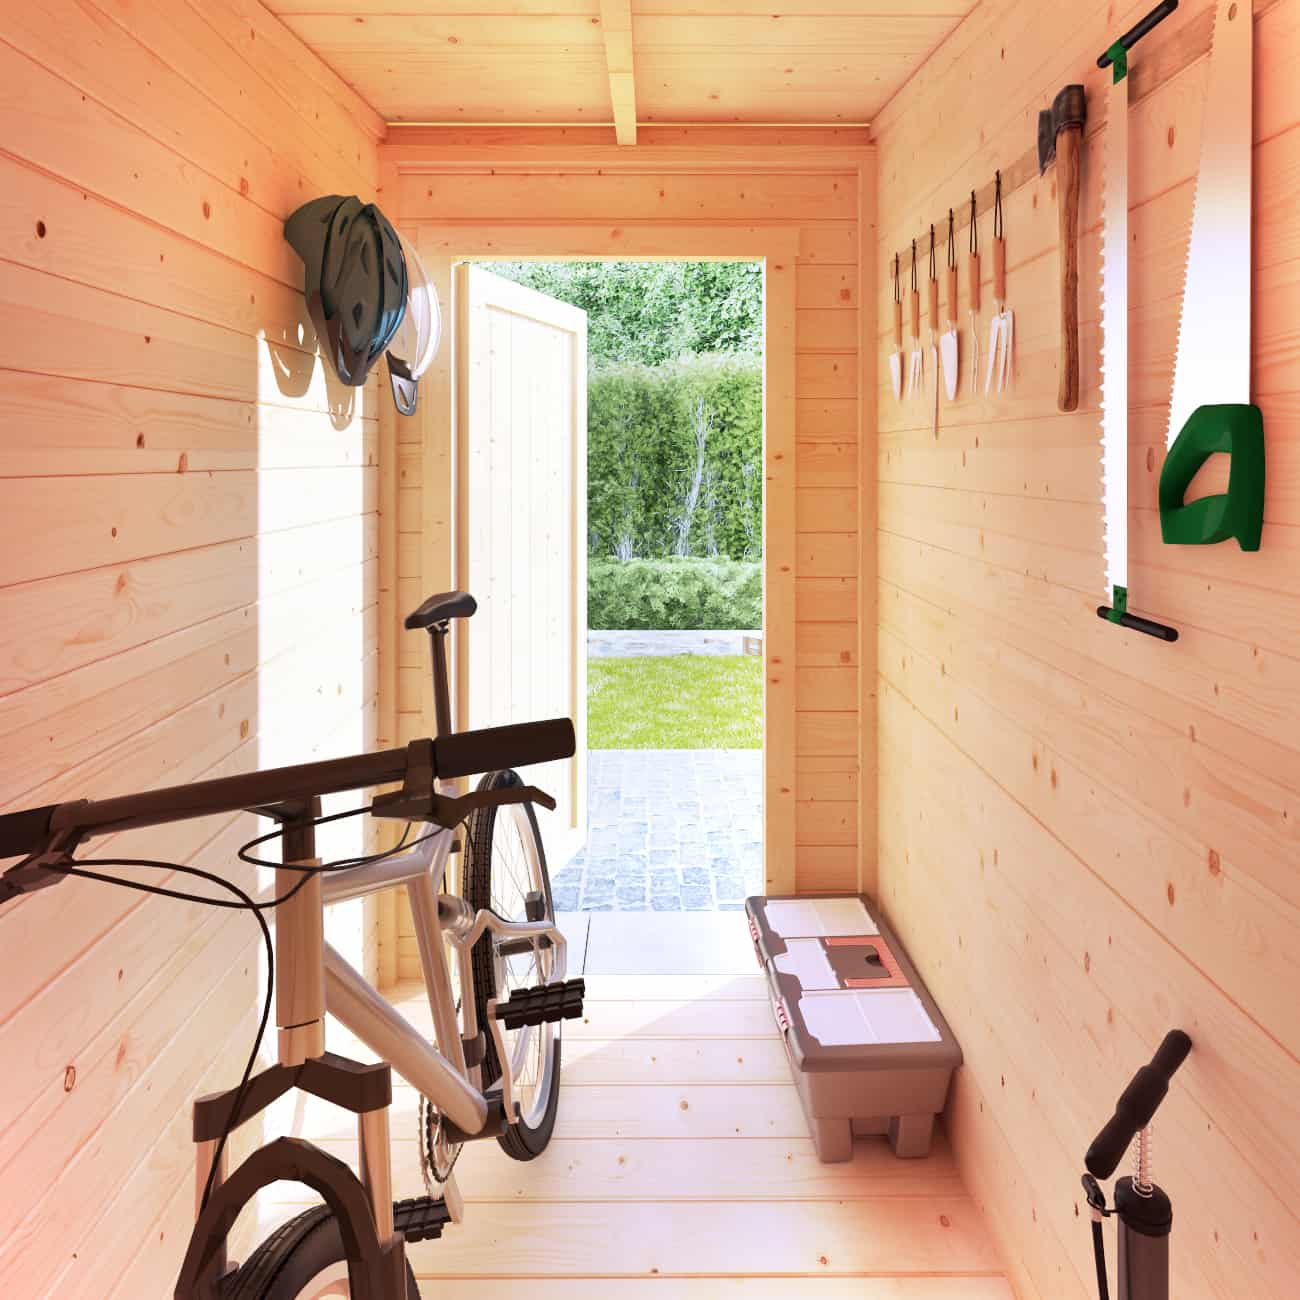 BillyOh Tianna Pent roof wooden summerhouse interior side store with bikes